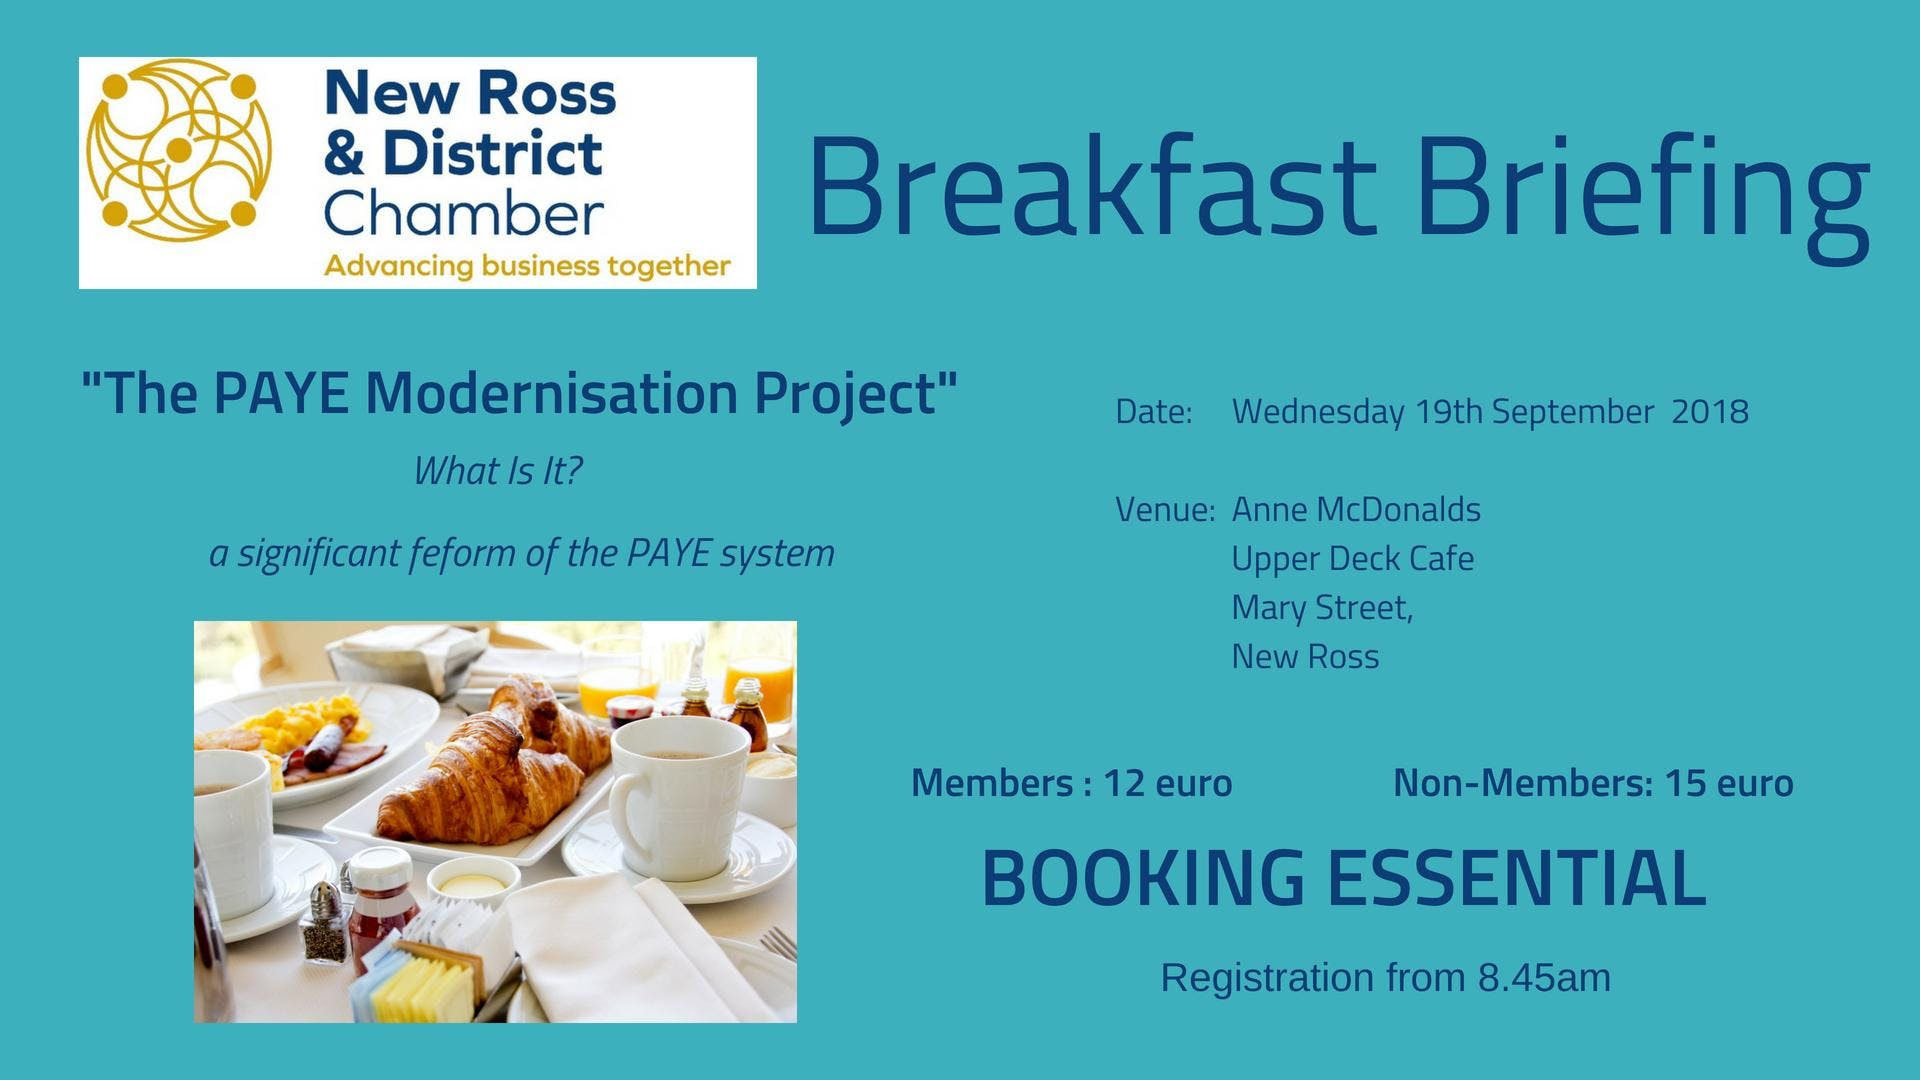 BREAKFAST BRIEFING- The PAYE Modernisation Project What is It?